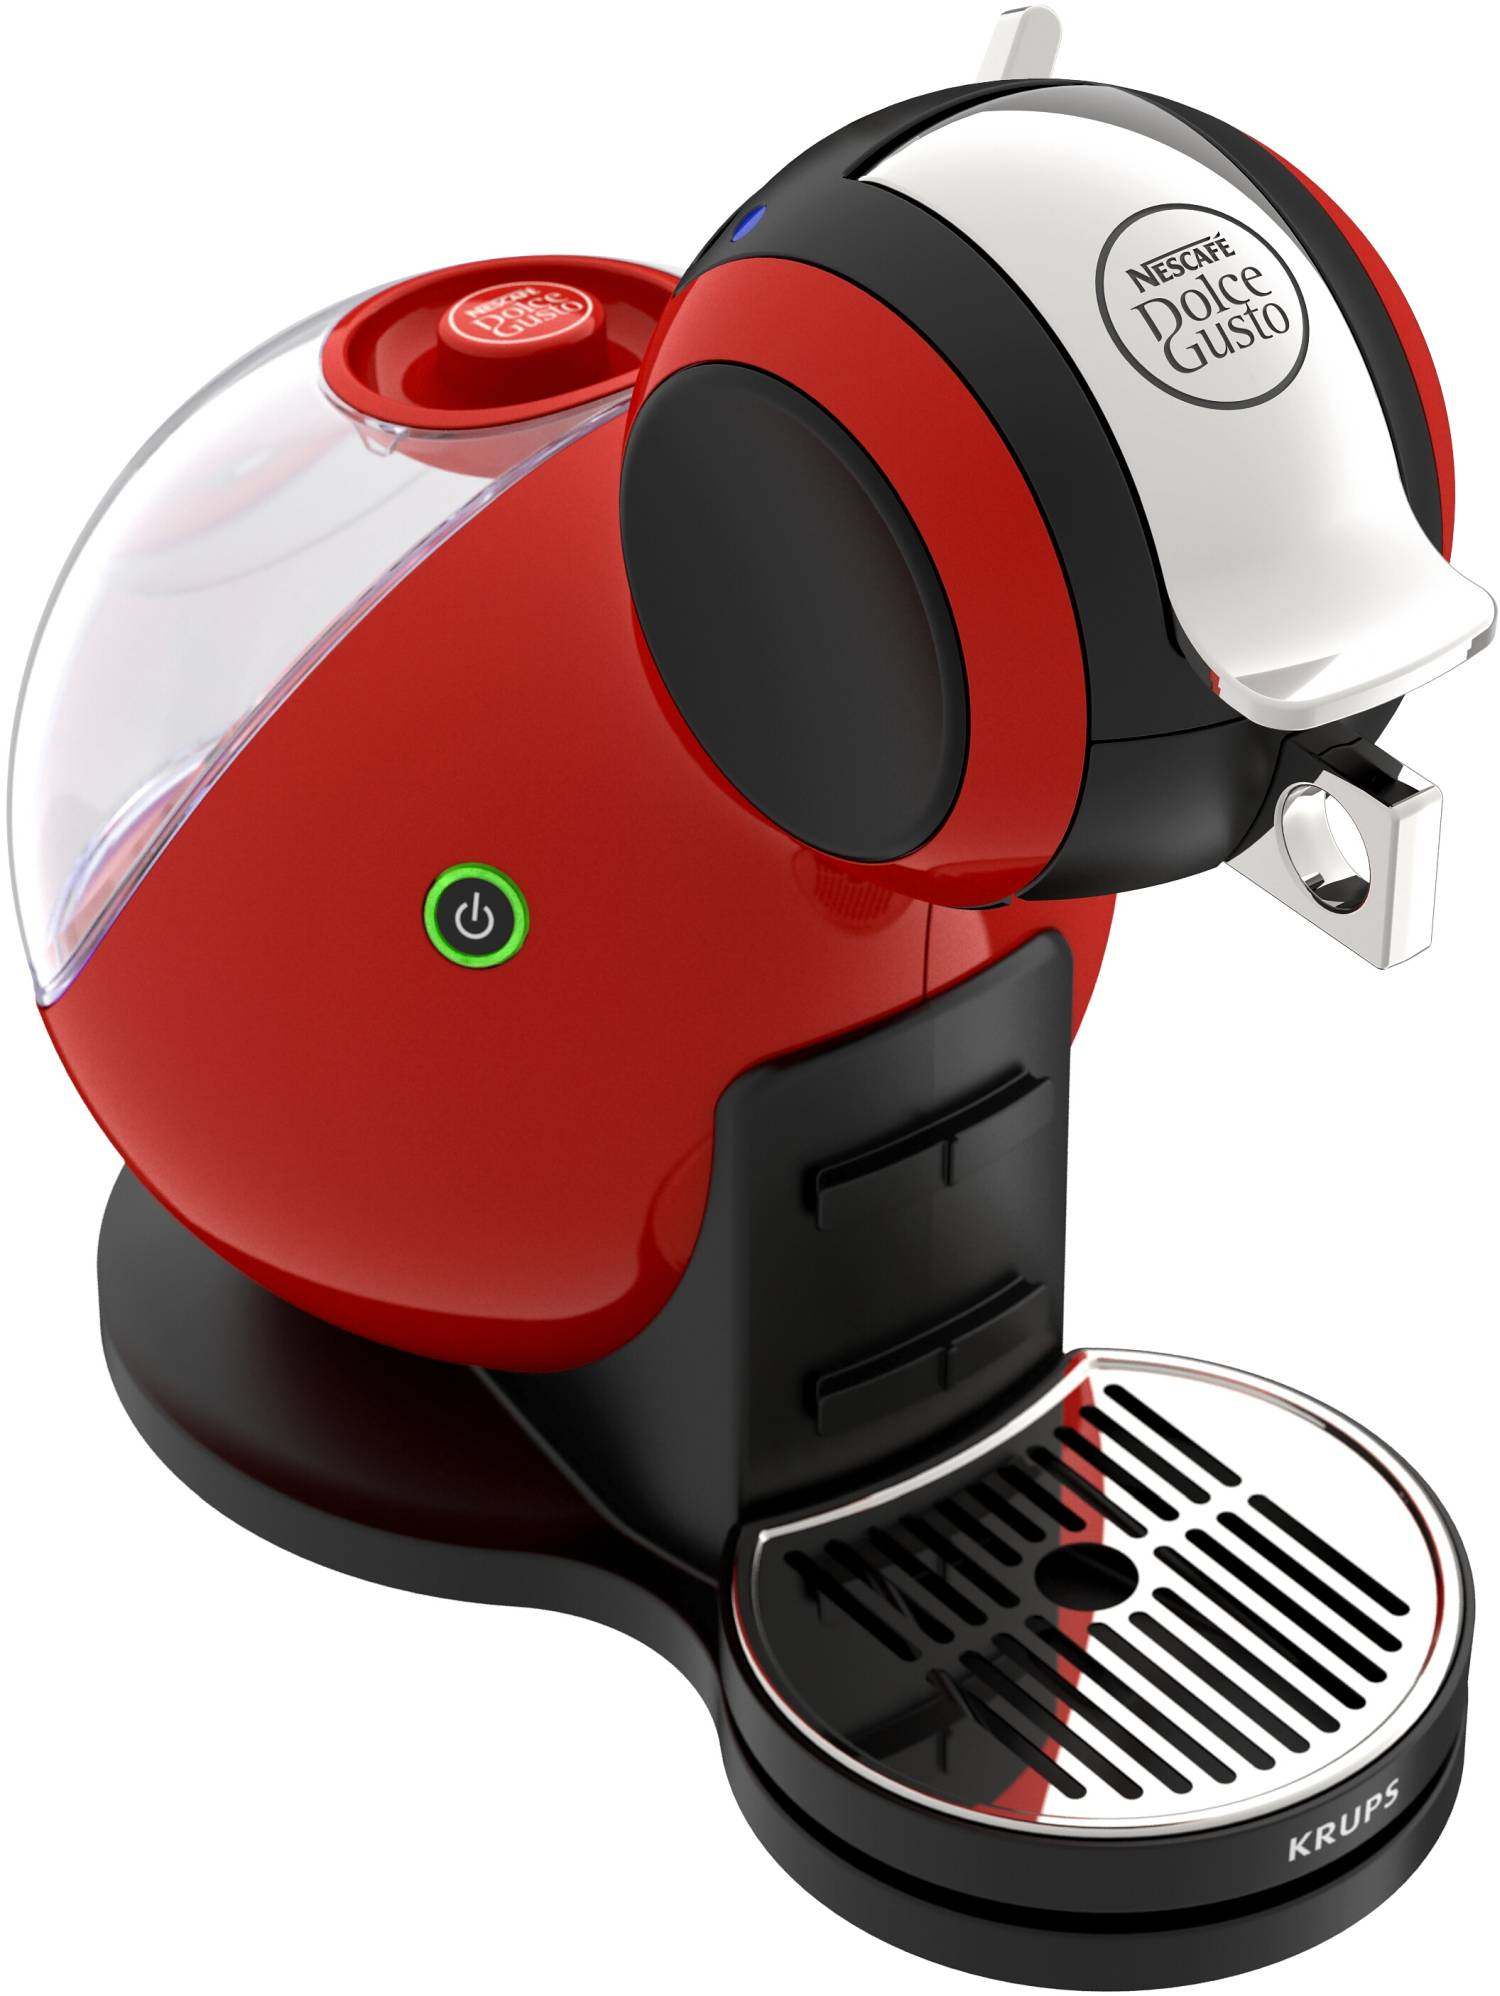 krups nescafe dolce gusto melody 3 kapsel kaffeemaschine. Black Bedroom Furniture Sets. Home Design Ideas